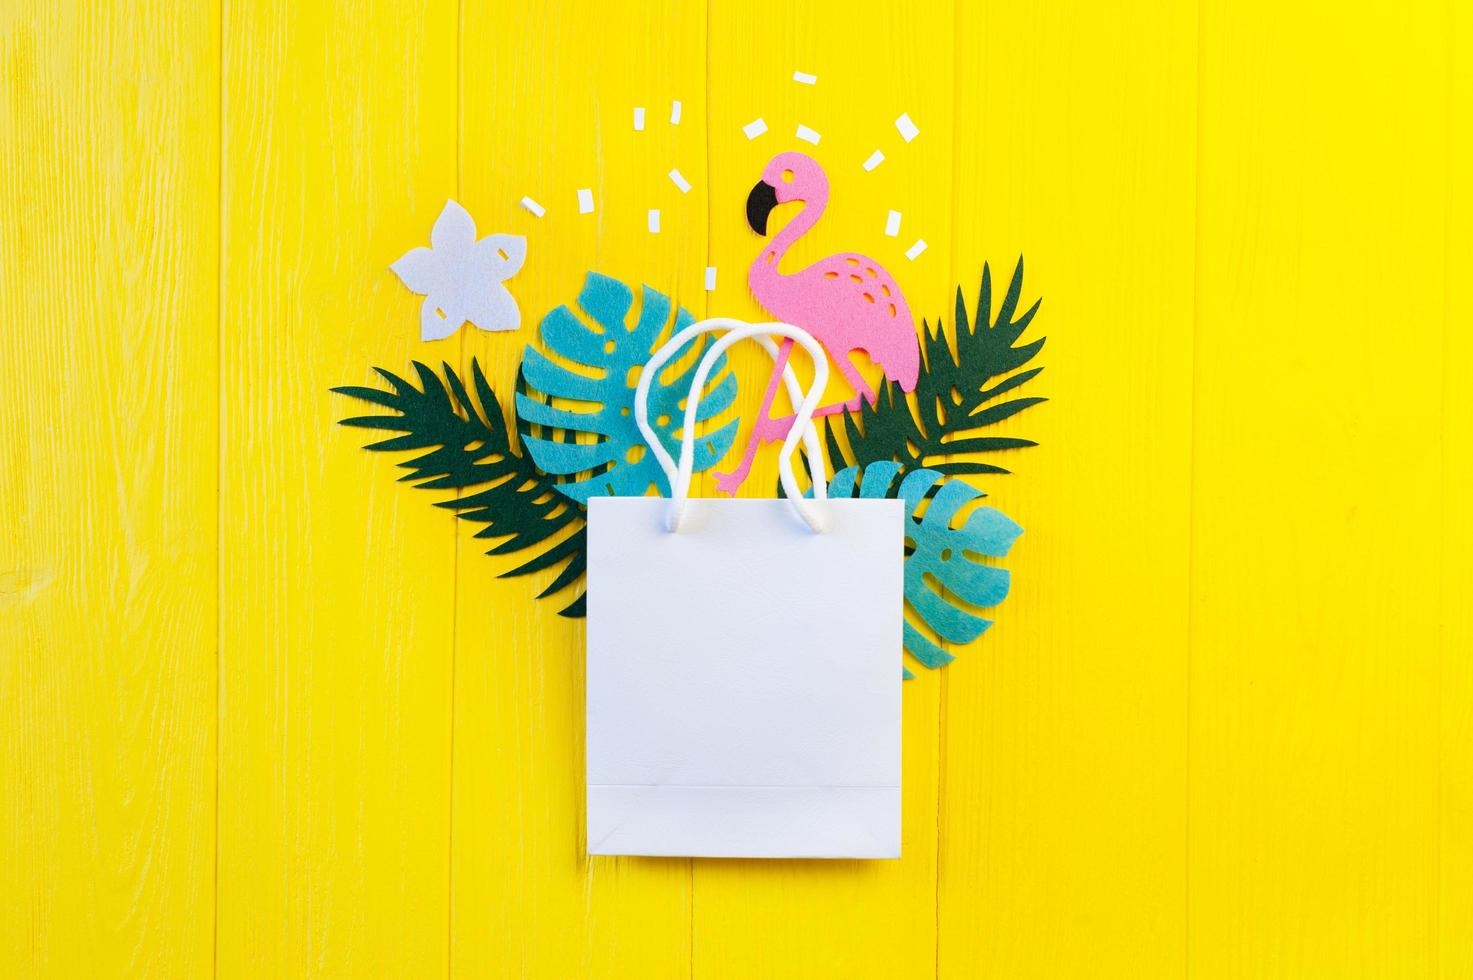 Mockup of blank paper with leaves and flamingo on yellow wooden background photo